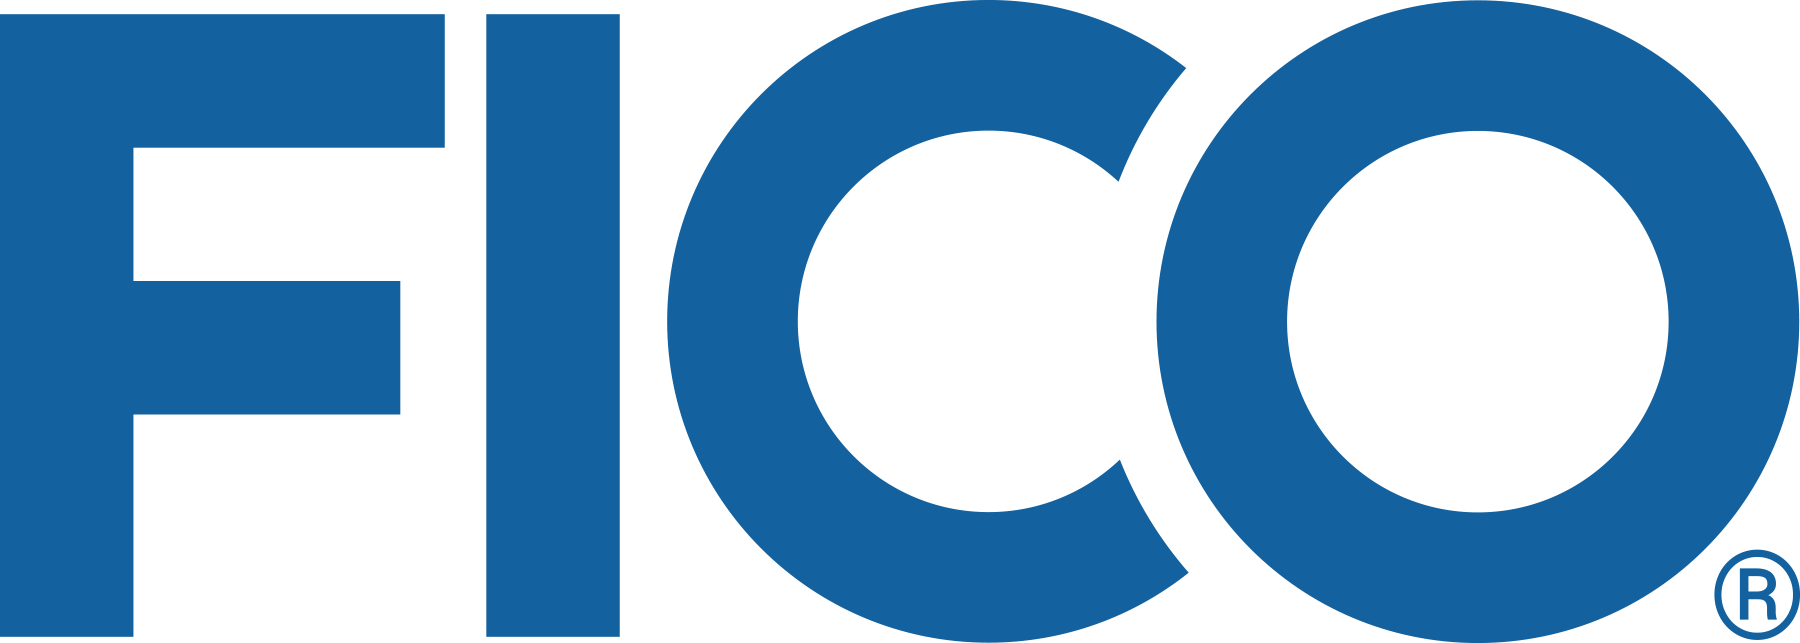 FICO and Visma Connect Launch Partnership to Offer SaaS Anti Financial Crime Solutions in Western-Europe